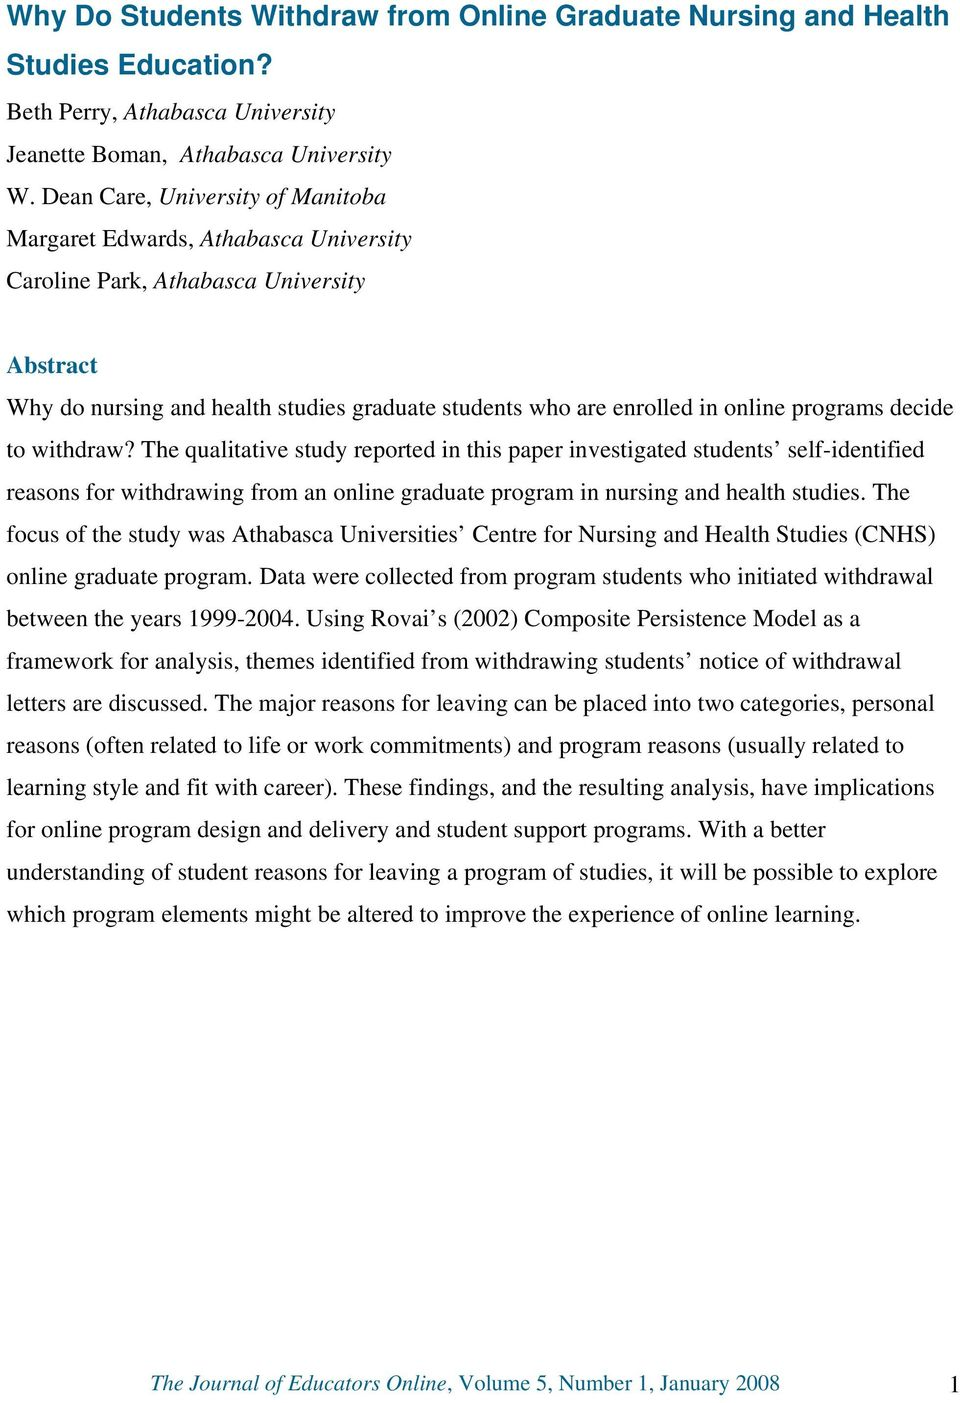 programs decide to withdraw? The qualitative study reported in this paper investigated students self-identified reasons for withdrawing from an online graduate program in nursing and health studies.